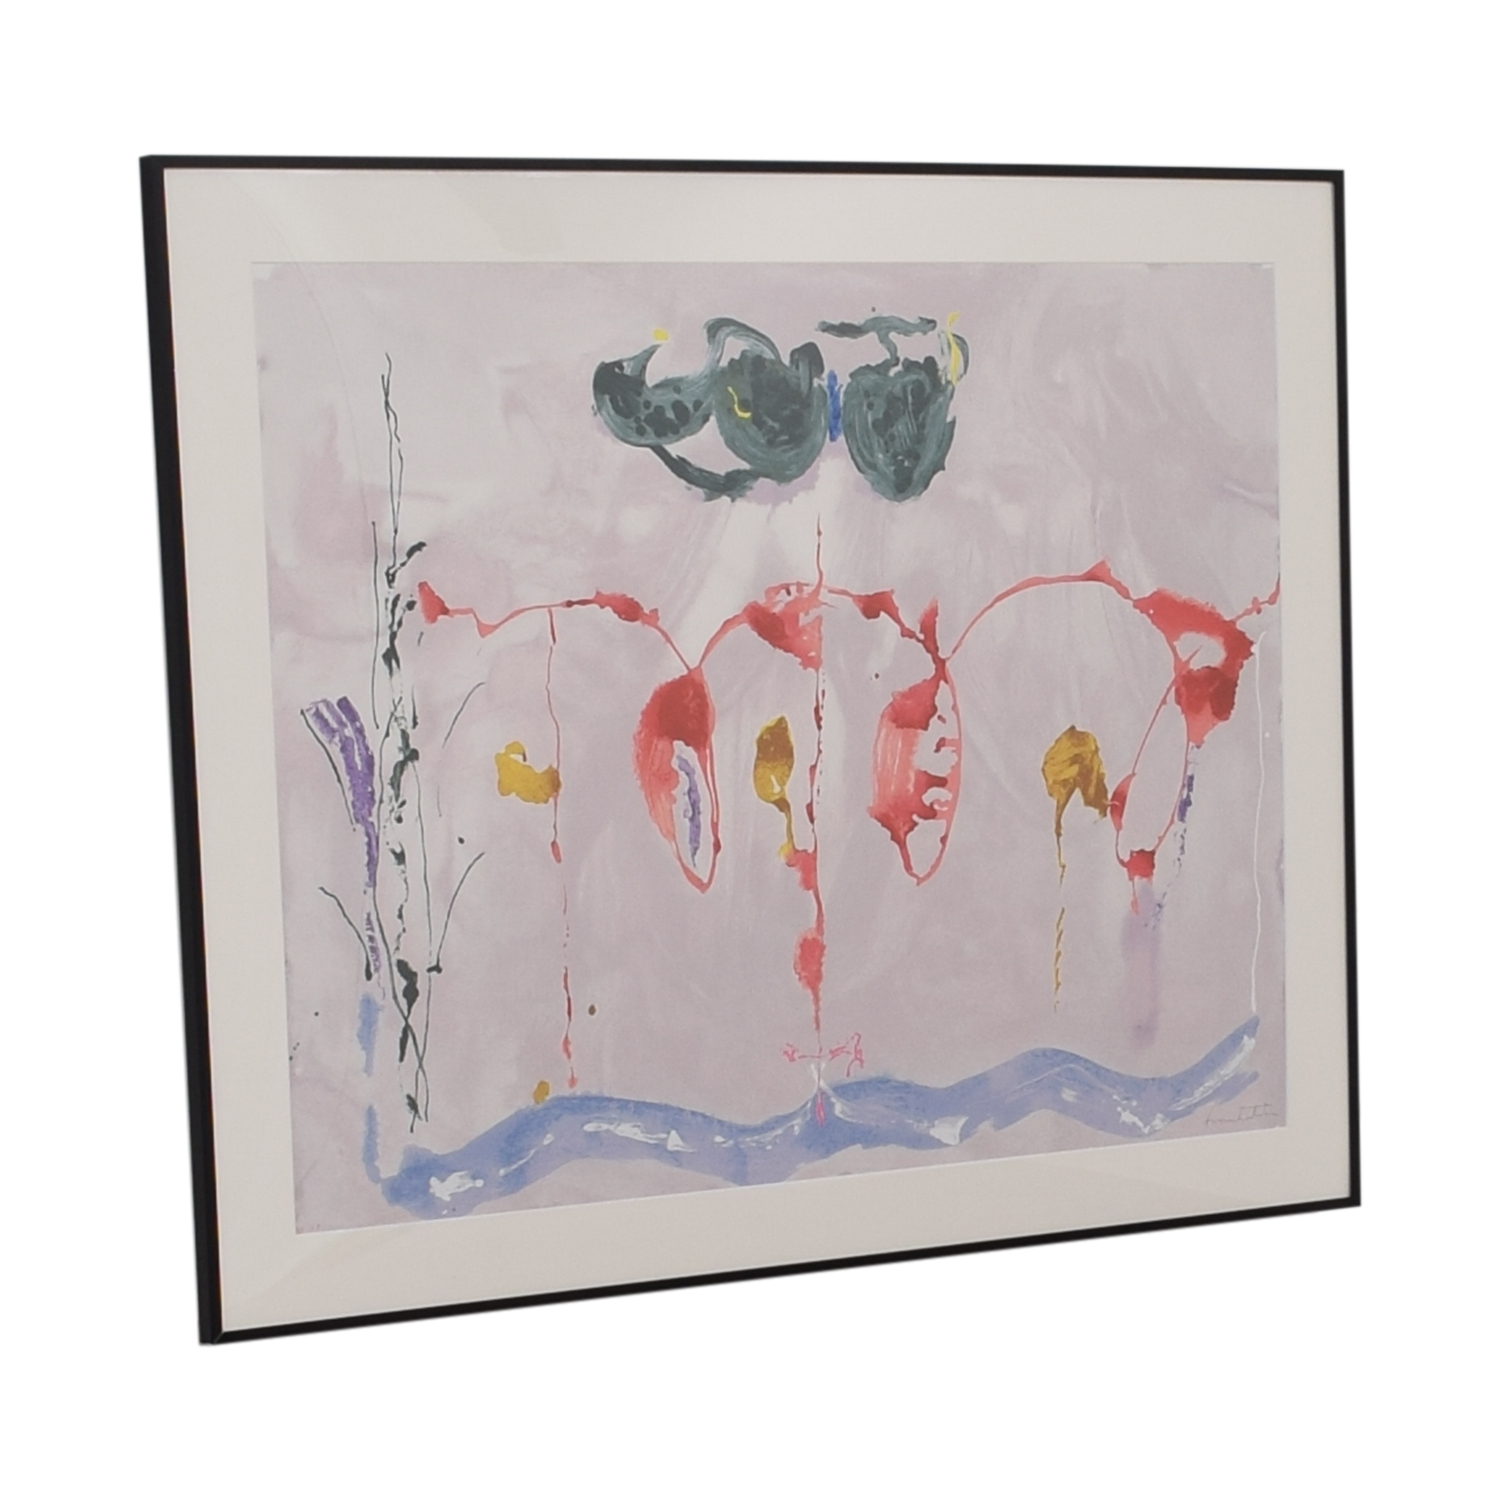 Lincoln Center Helen Frankenthaler 'Aerie' Silkscreen Print coupon